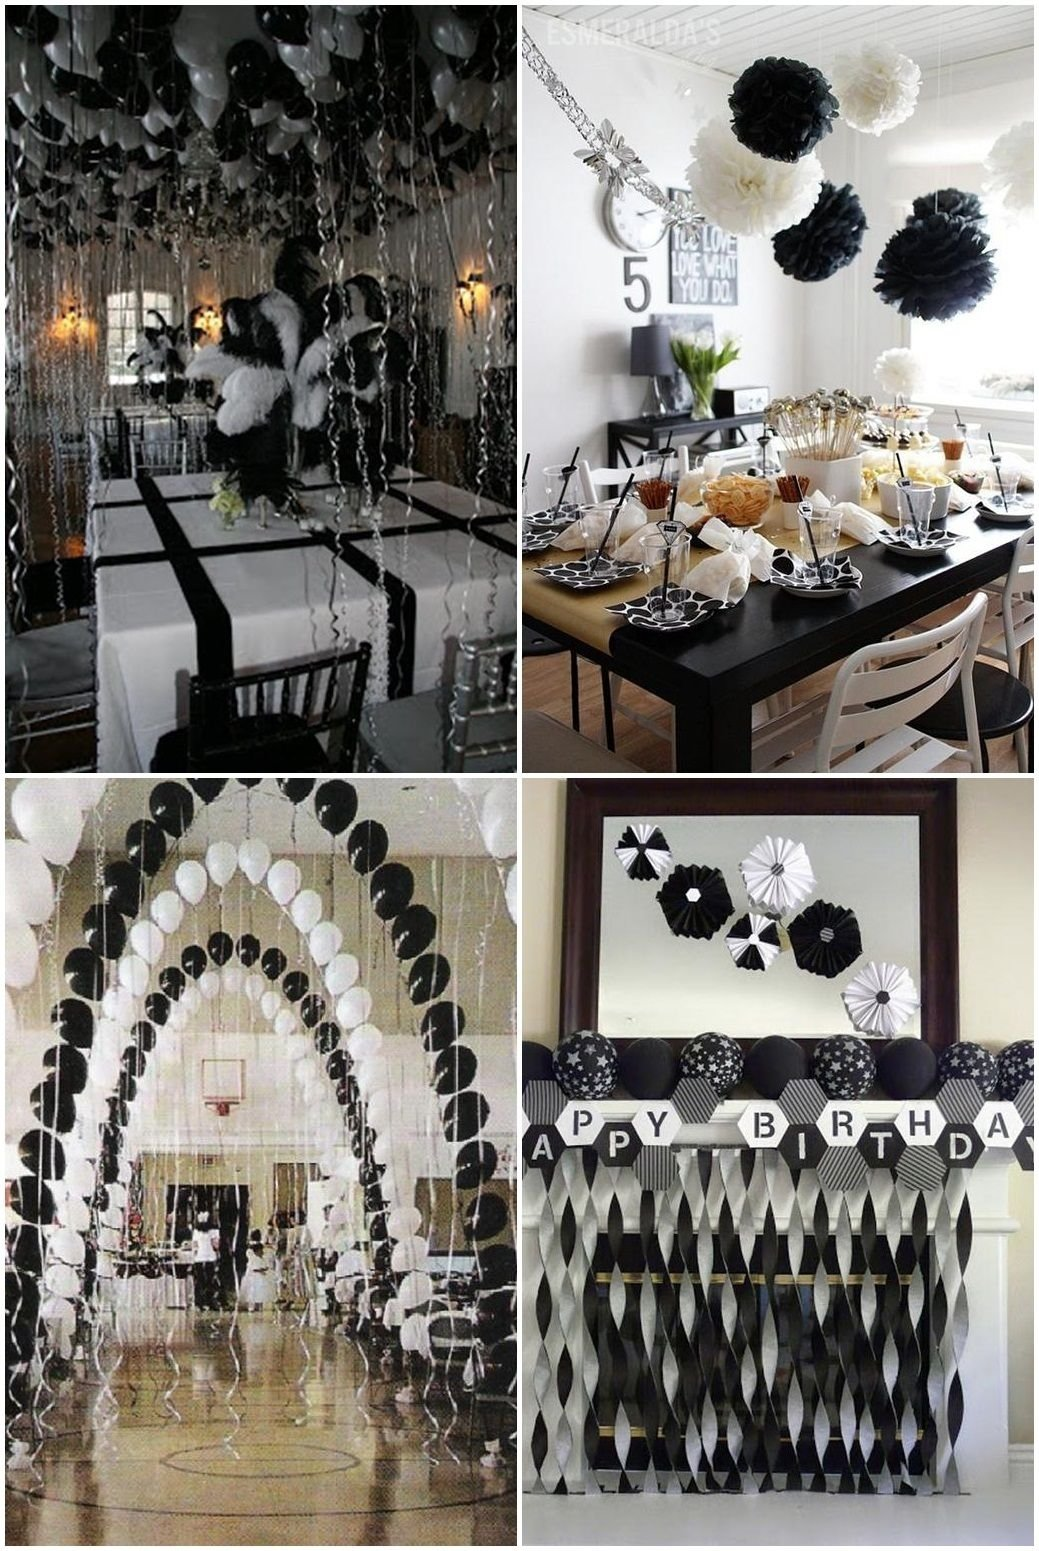 10 Awesome Black And White Centerpiece Ideas black and white graduation party ideas father daughter dance decor 5 2021